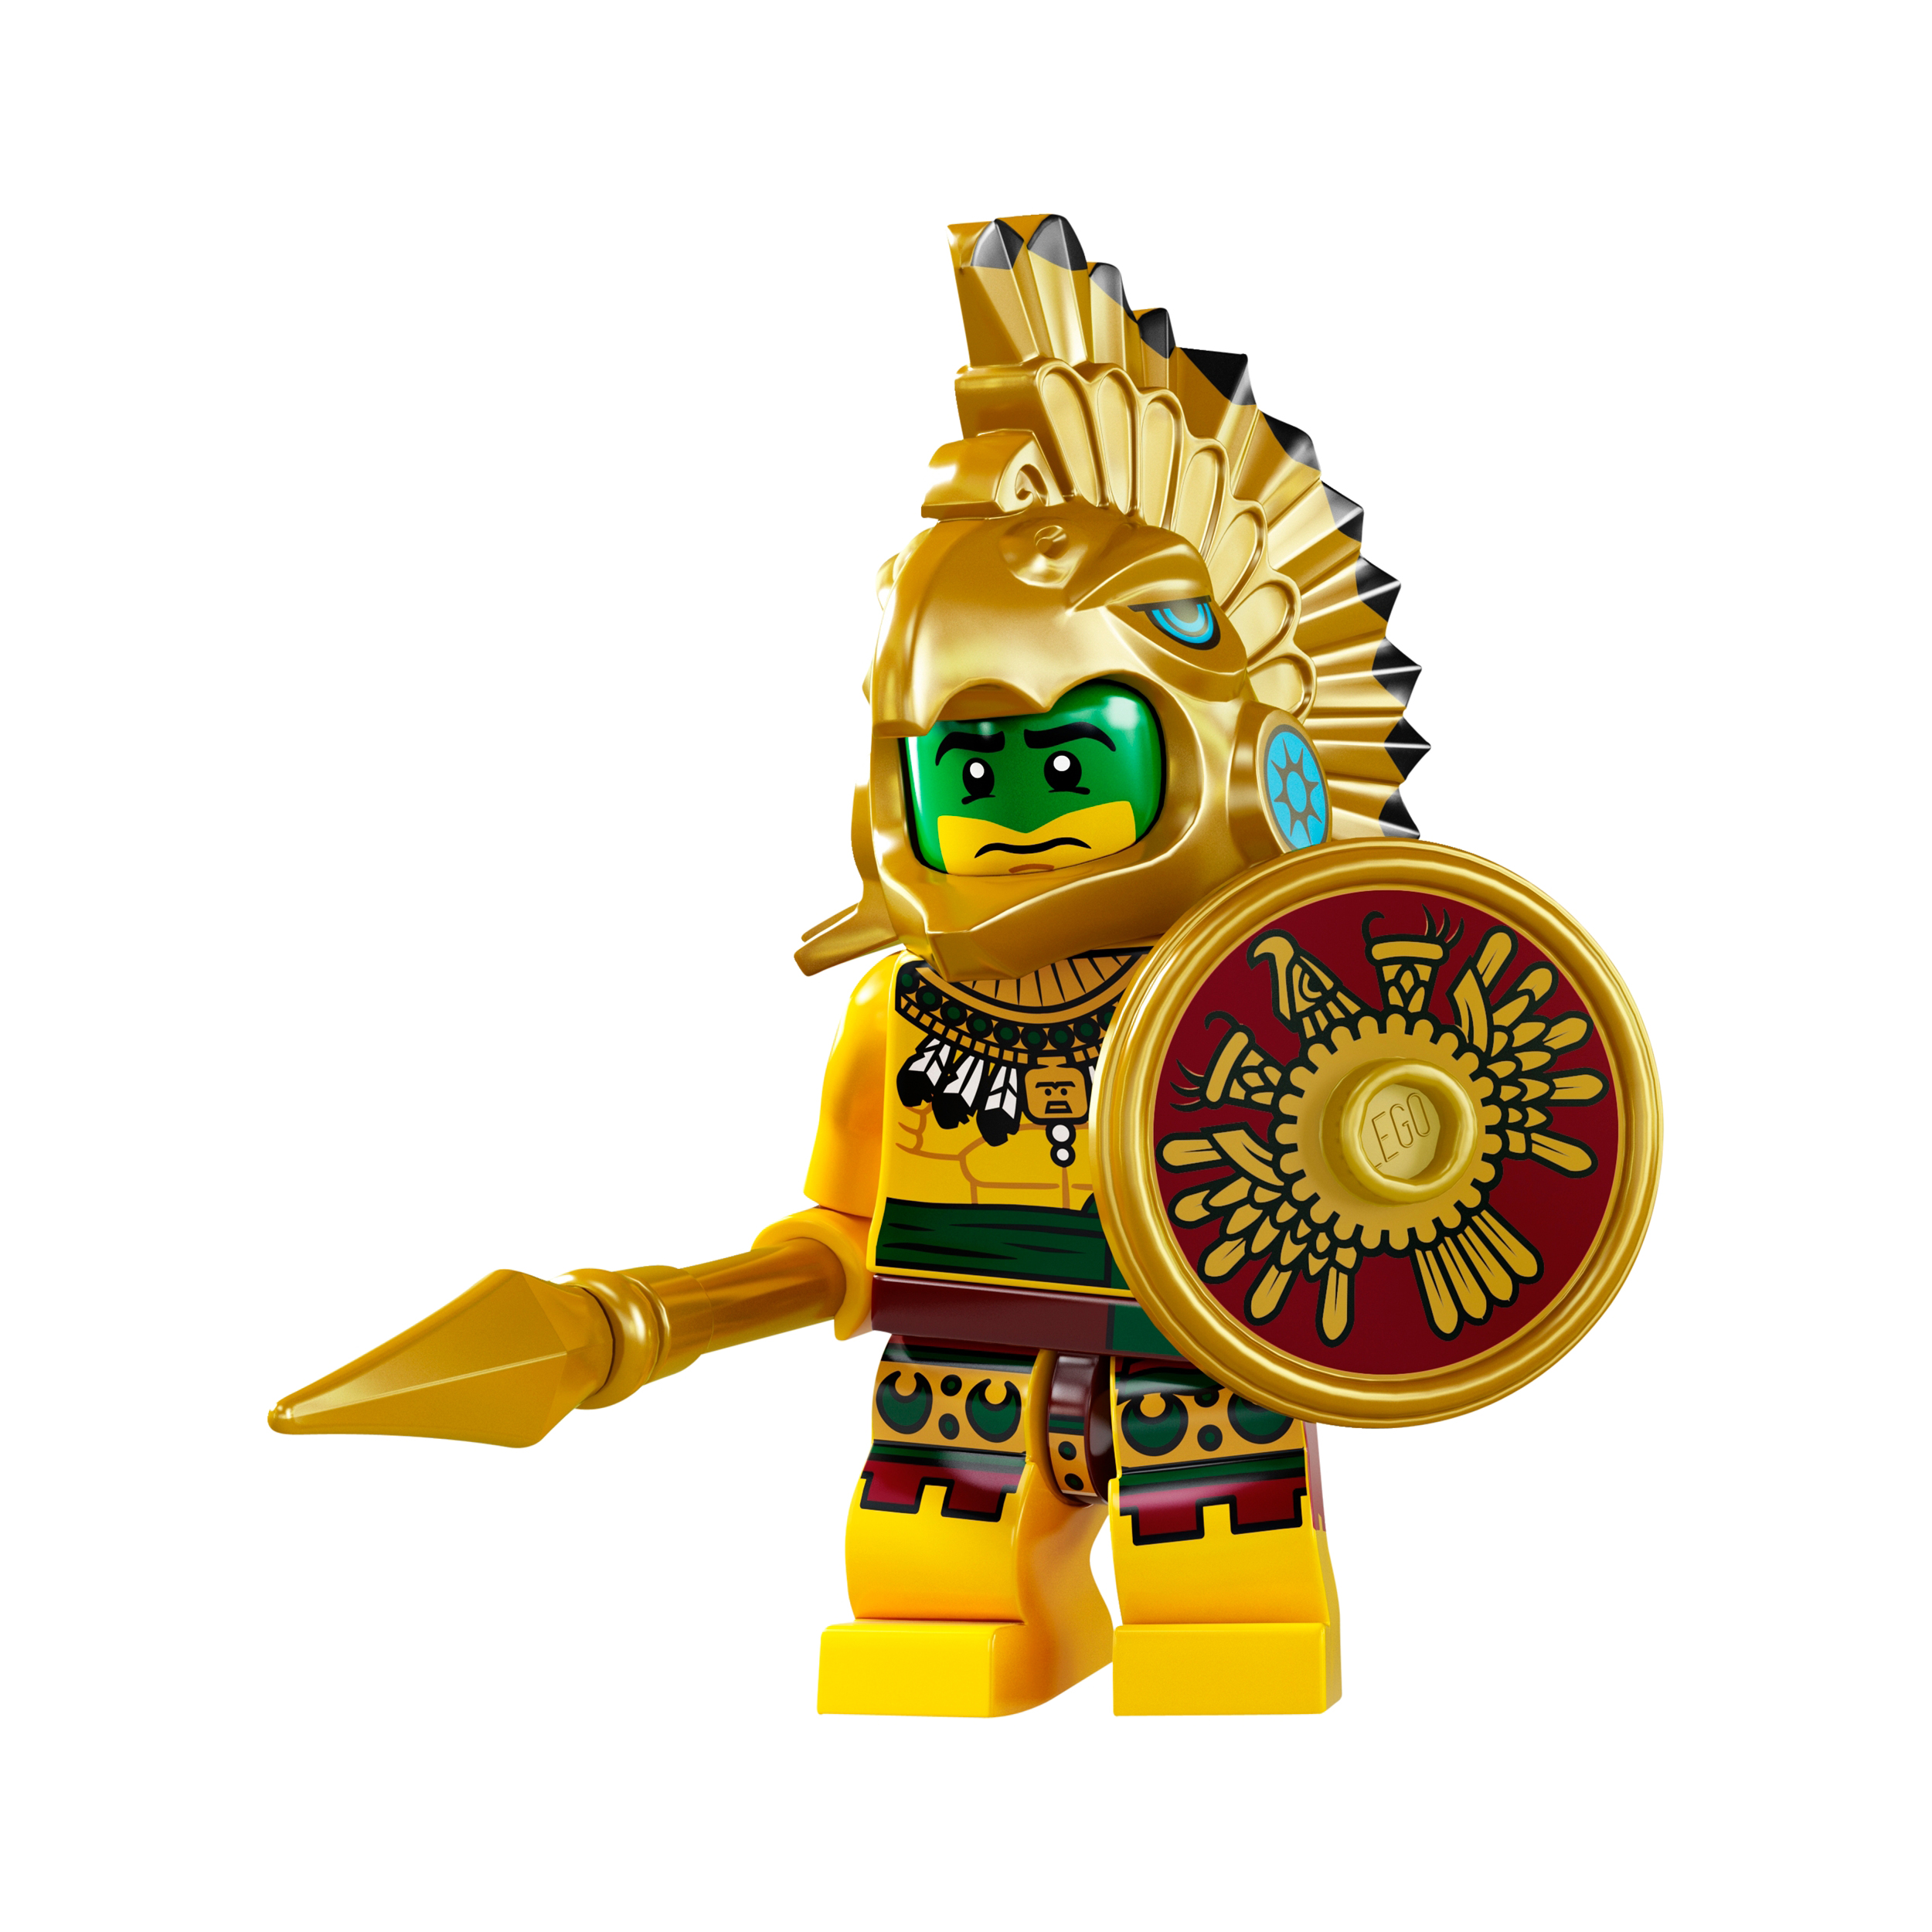 f_8831_aztec_warrior.jpg